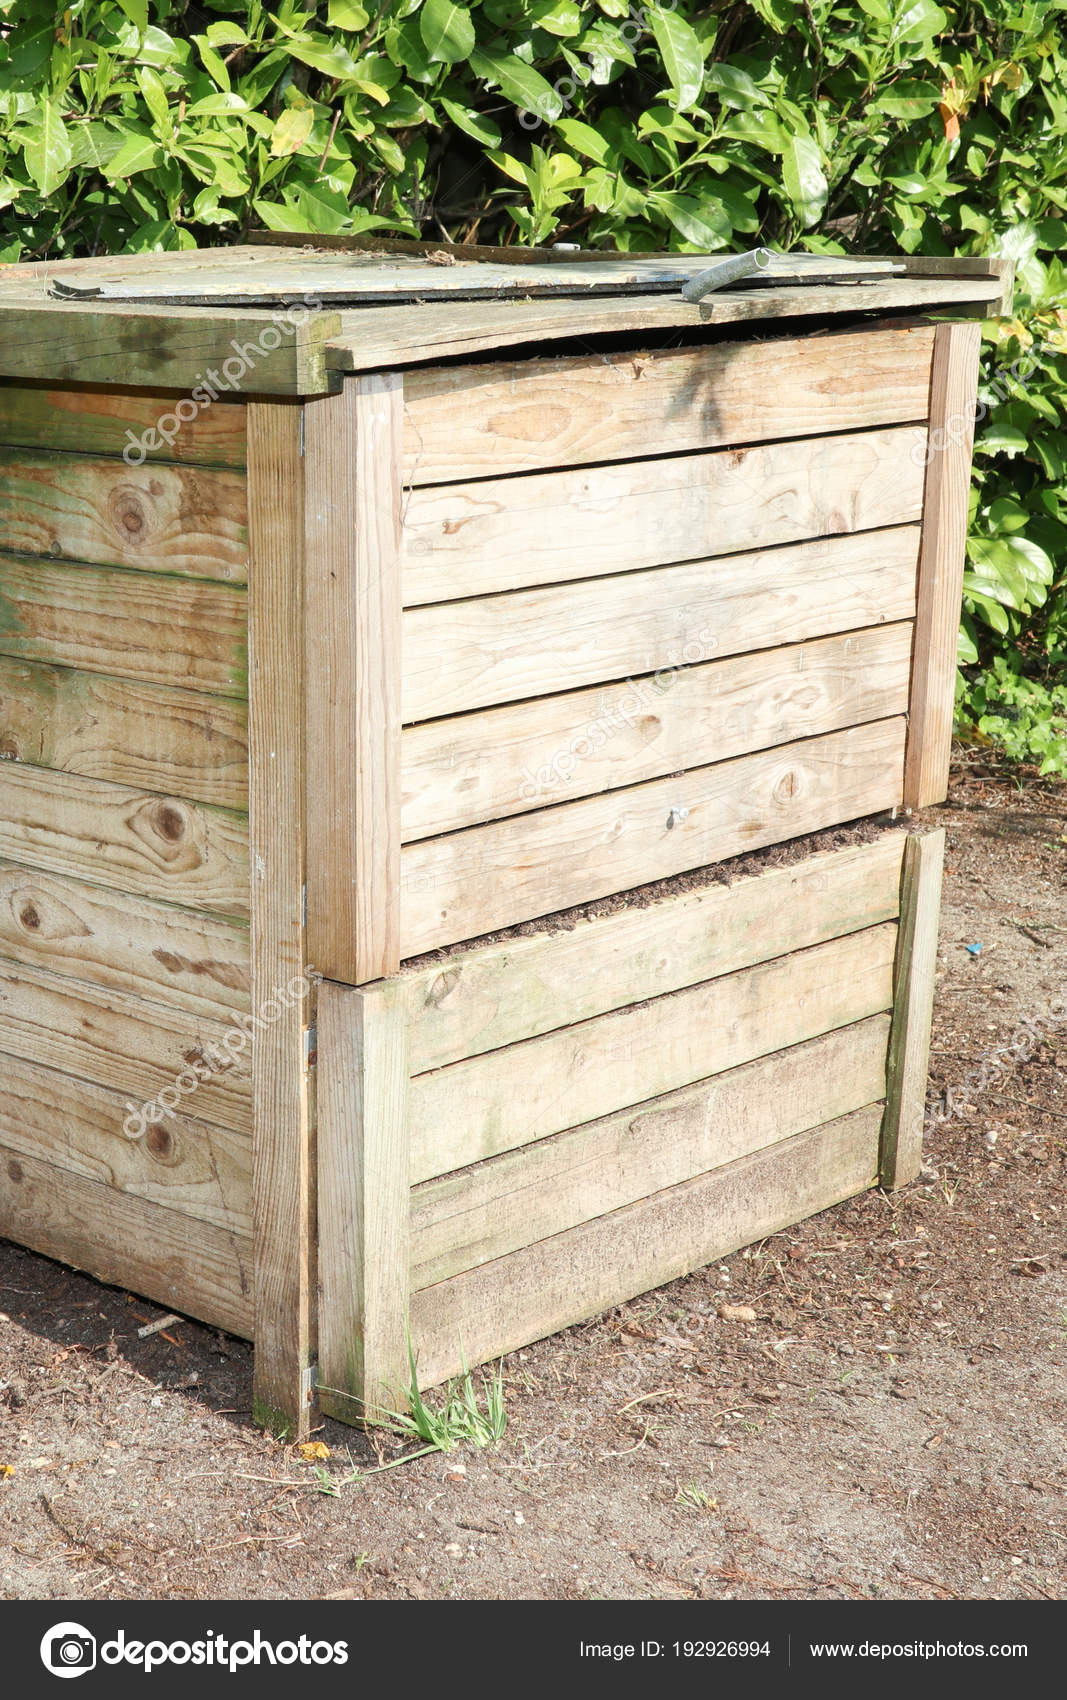 compost bin for kitchen outdoor with fireplace 有机原料木堆肥箱 图库照片 c sylv1rob1 192926994